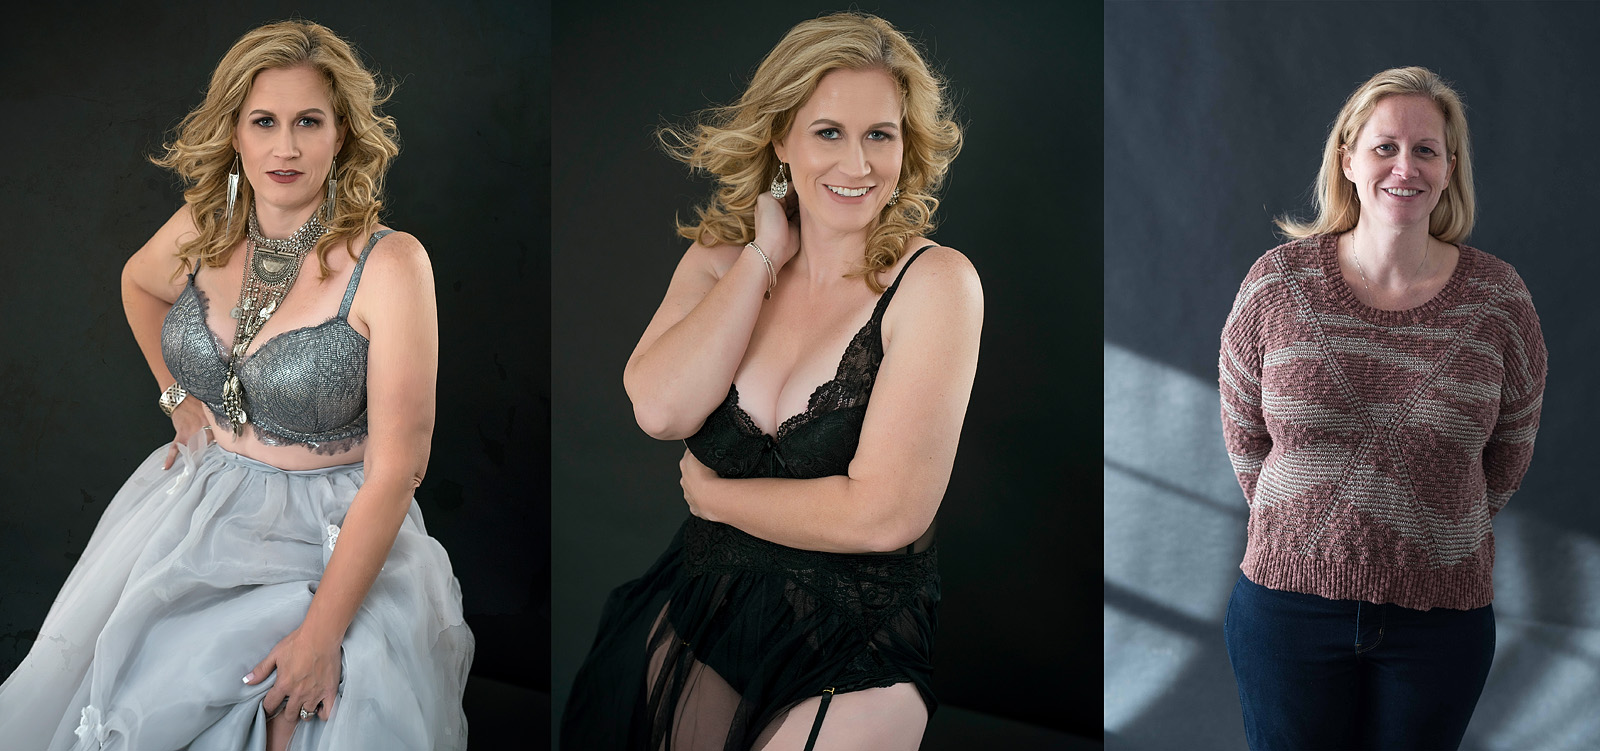 boudoir photographer before after